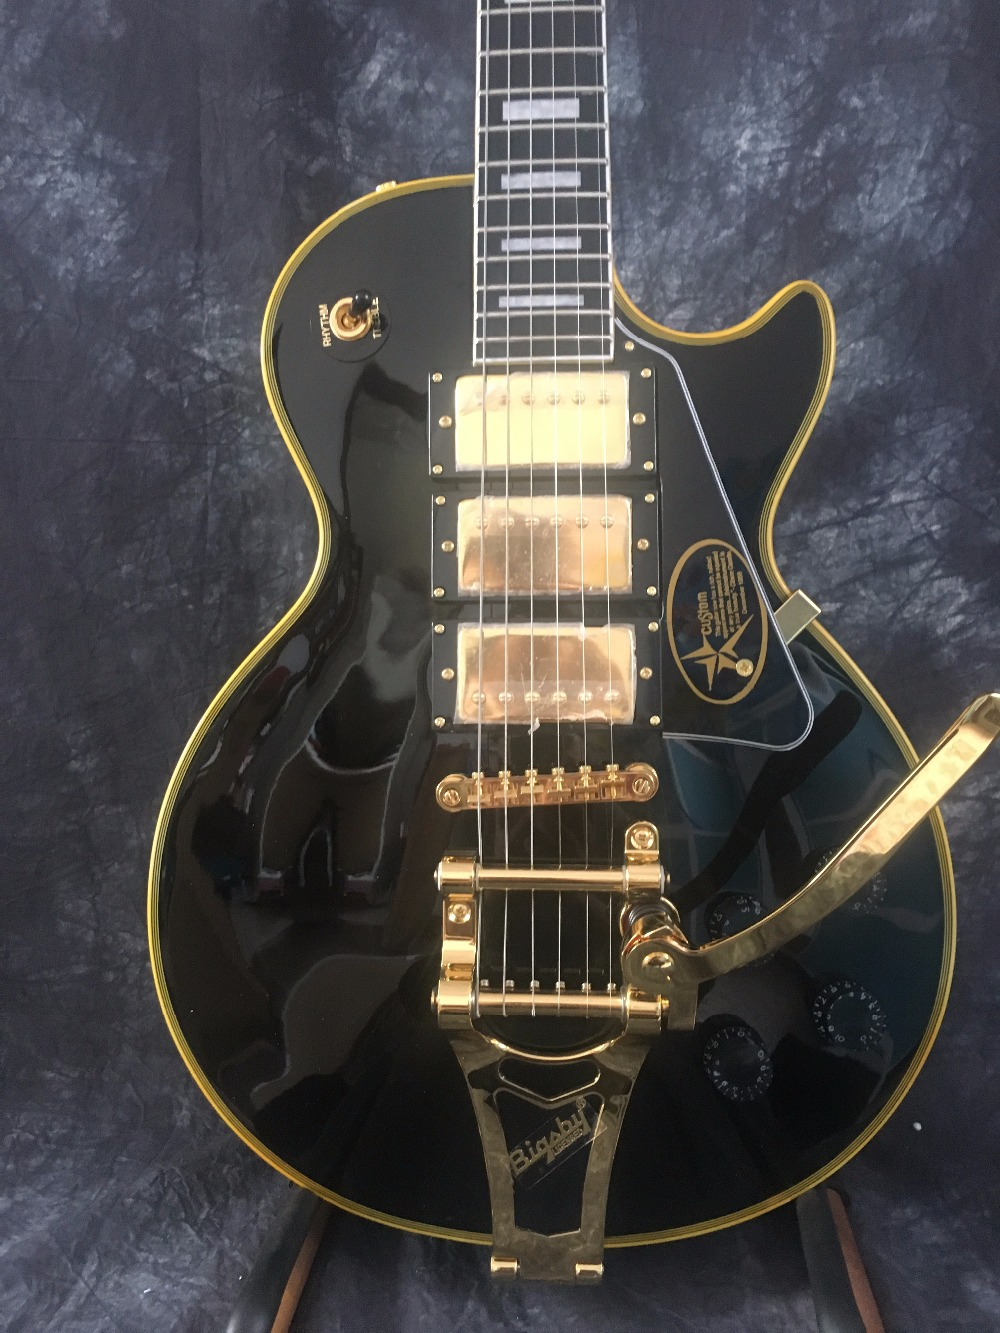 Free Shipping Custom Paul Black 3 Pickups Golden Hardware Electric Guitar with Bigsby free shipping custom paul black 3 pickups golden hardware electric guitar with bigsby